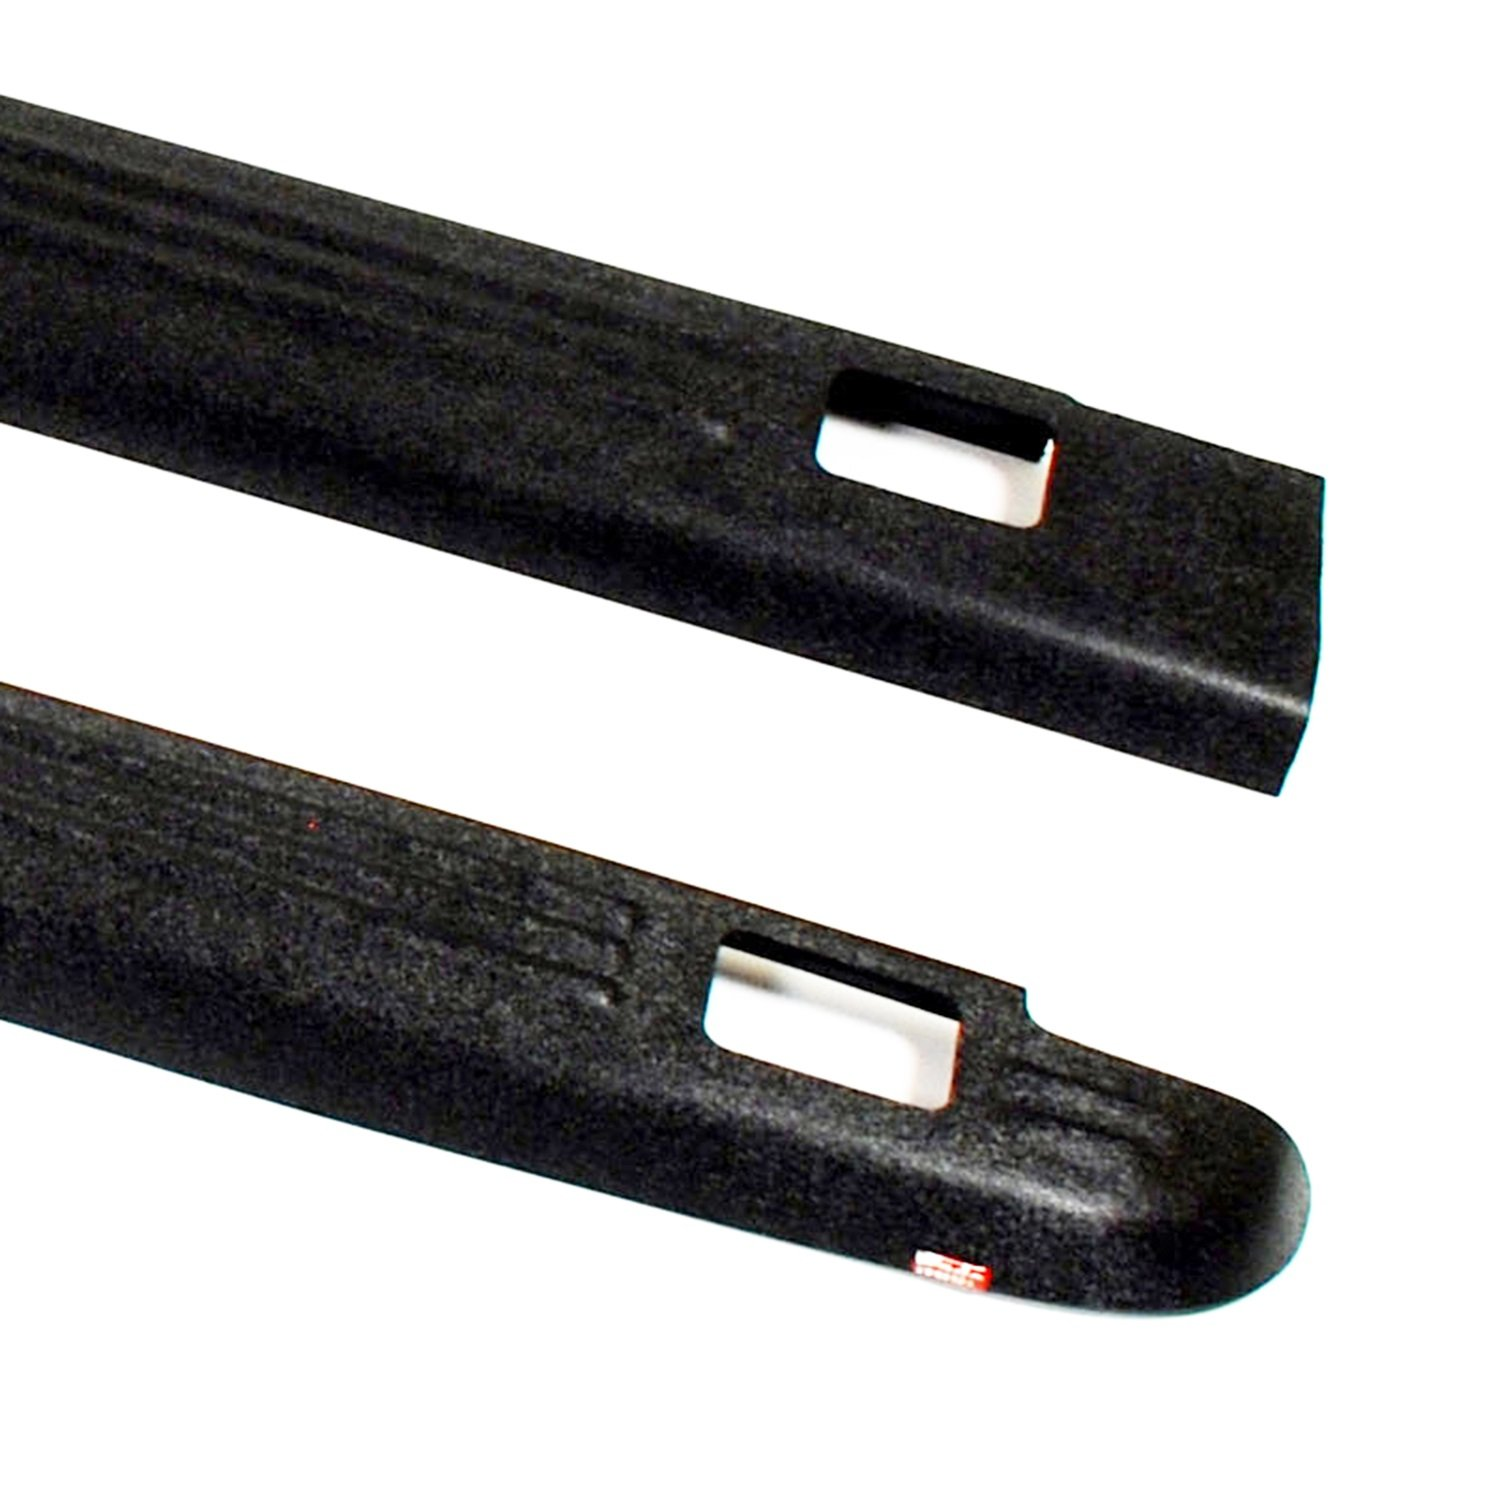 Set of 2 Wade 72-01105 Truck Bed Rail Caps Black Ribbed Finish with Stake Holes for 2007-2014 GMC Sierra 1500 2500 with 6.5ft bed